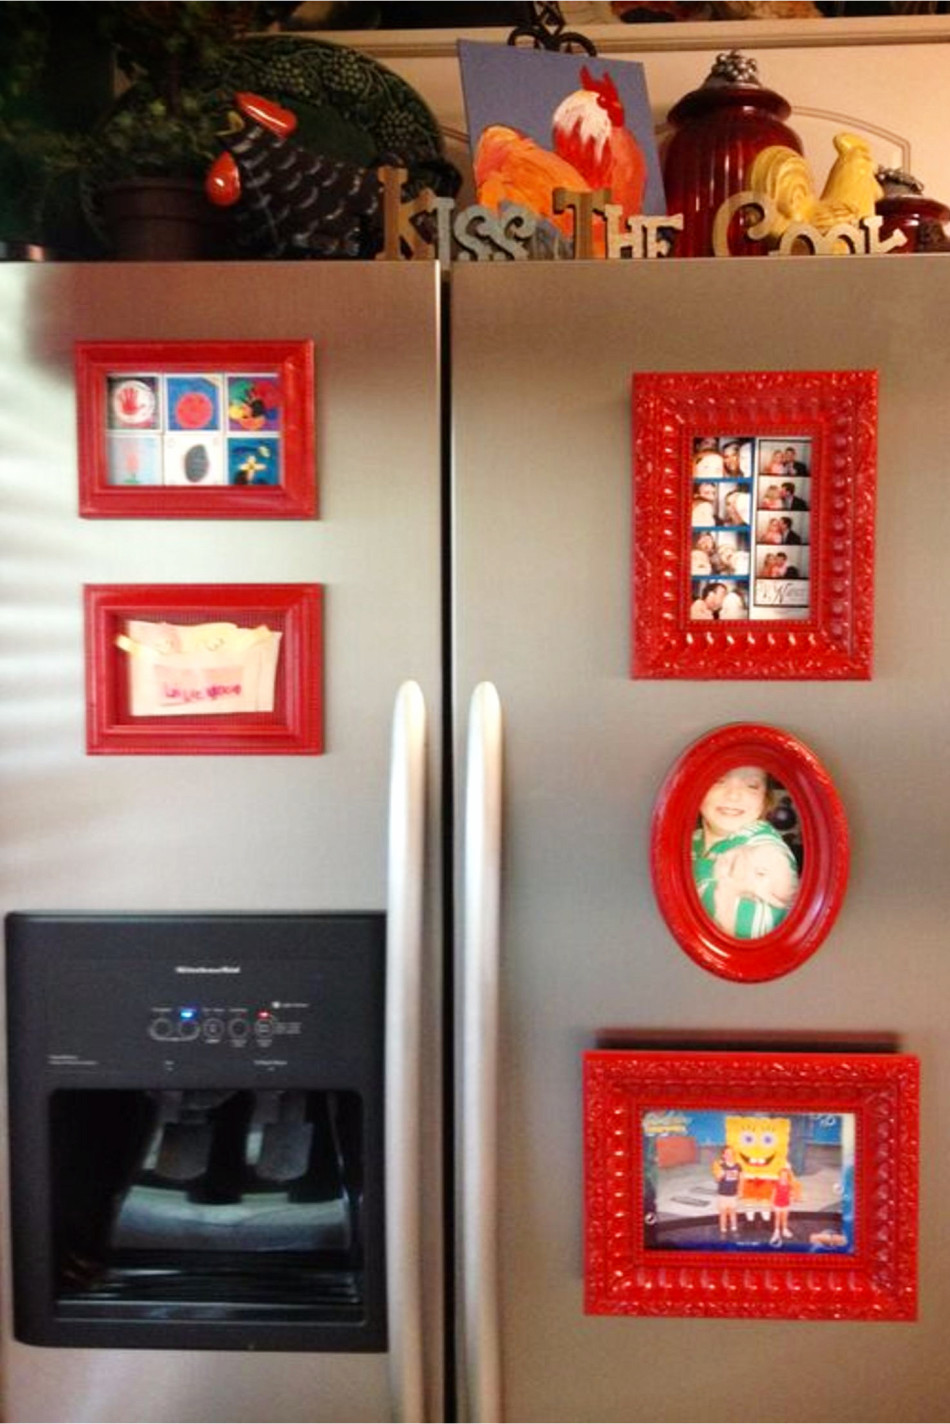 Decorate your refrigerator with magnetic picture frames - sure declutters all the STUFF on your fridge